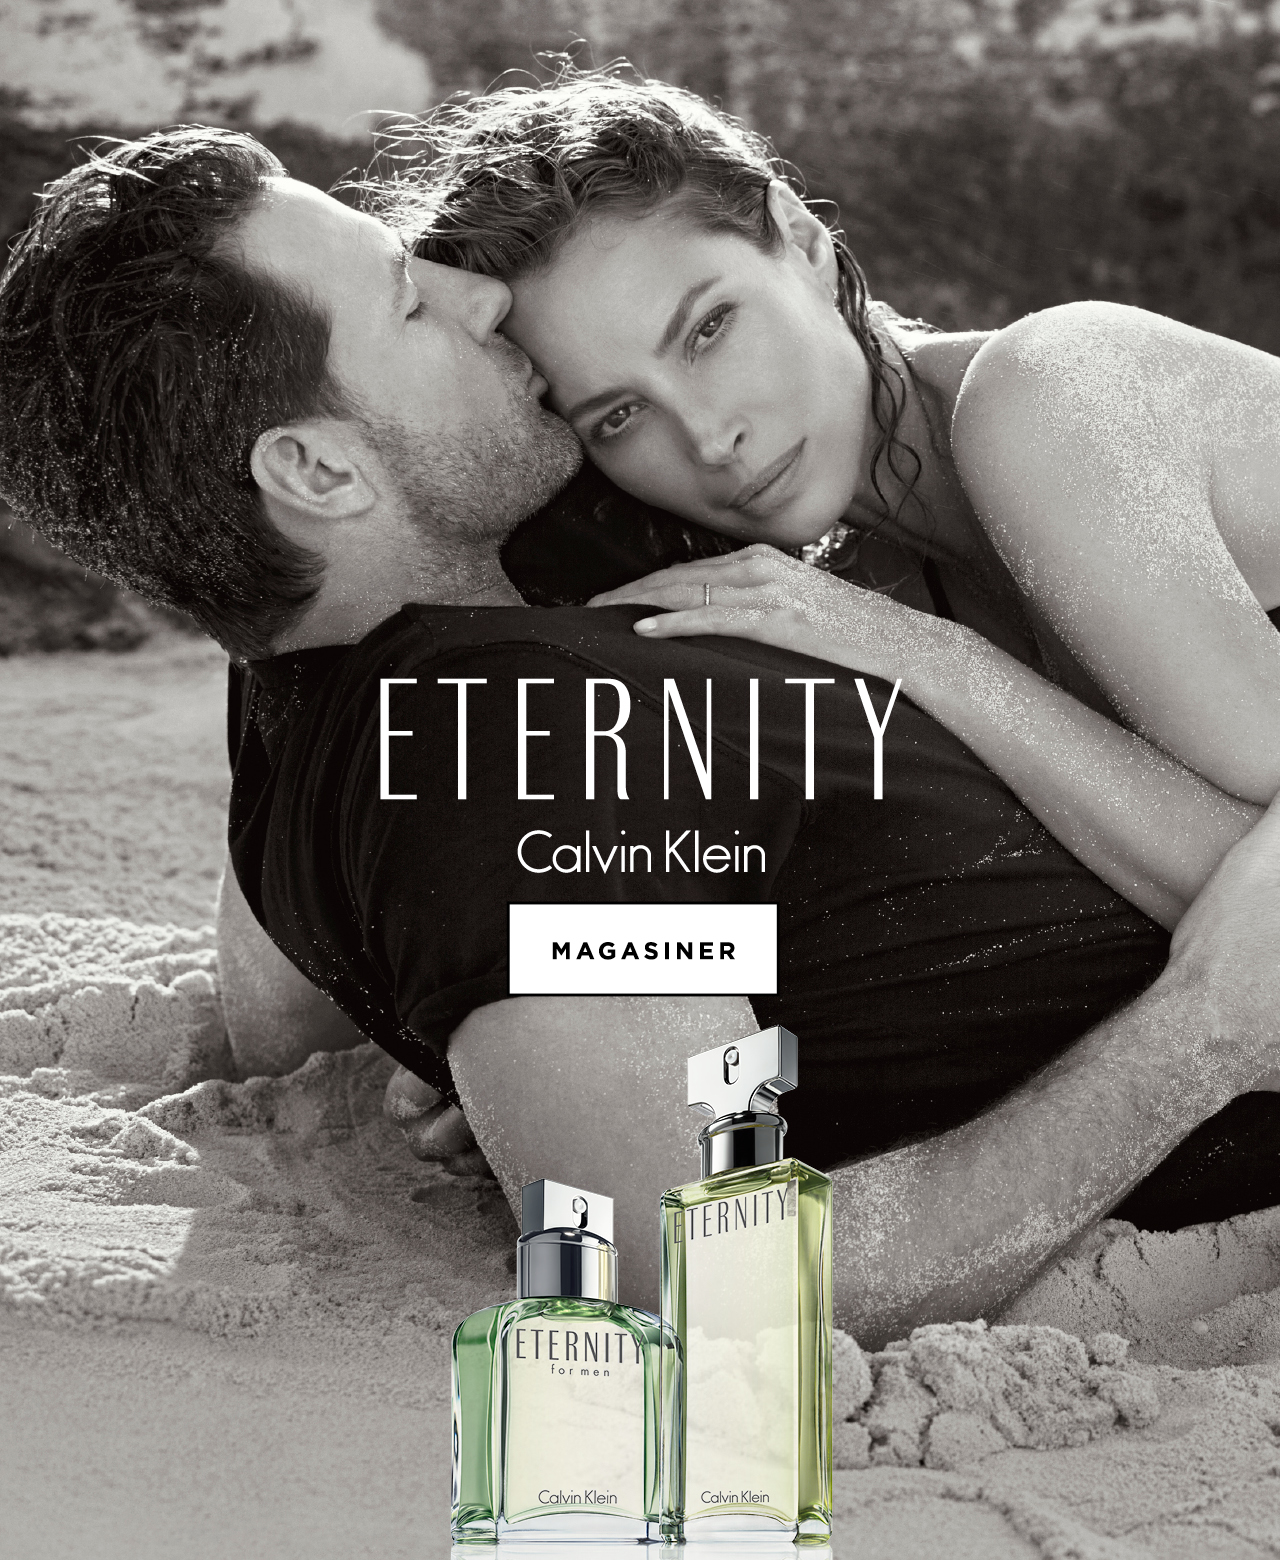 Eternity Calvin Klein Magasiner